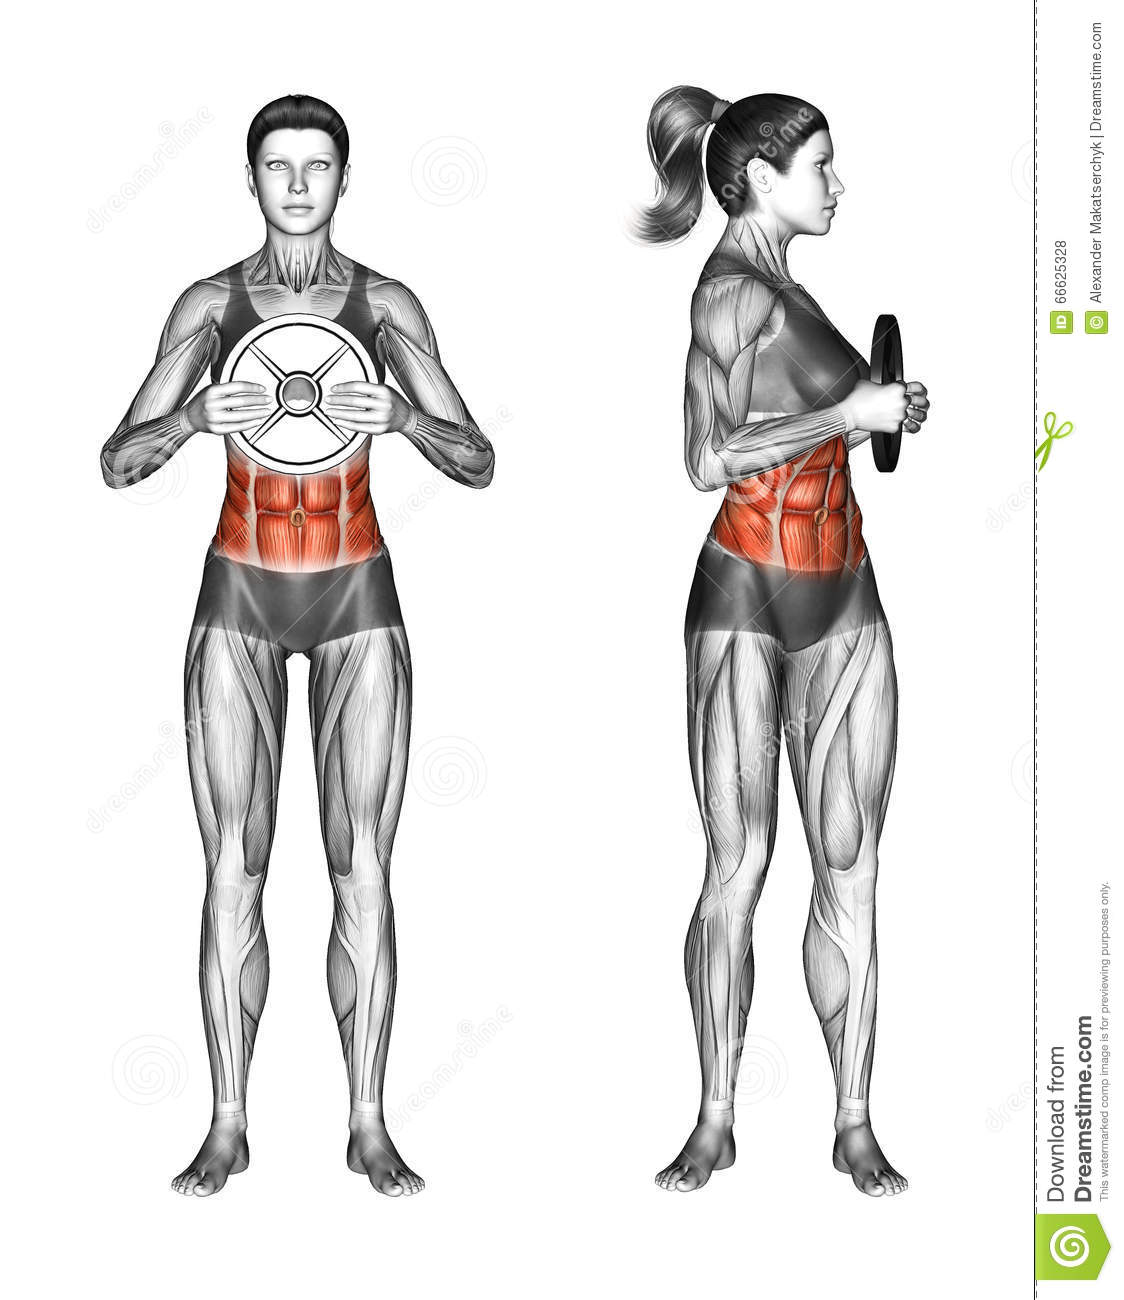 Fitball Exercising Oblique Twist With Weight PlateOblique Exercises With Weights